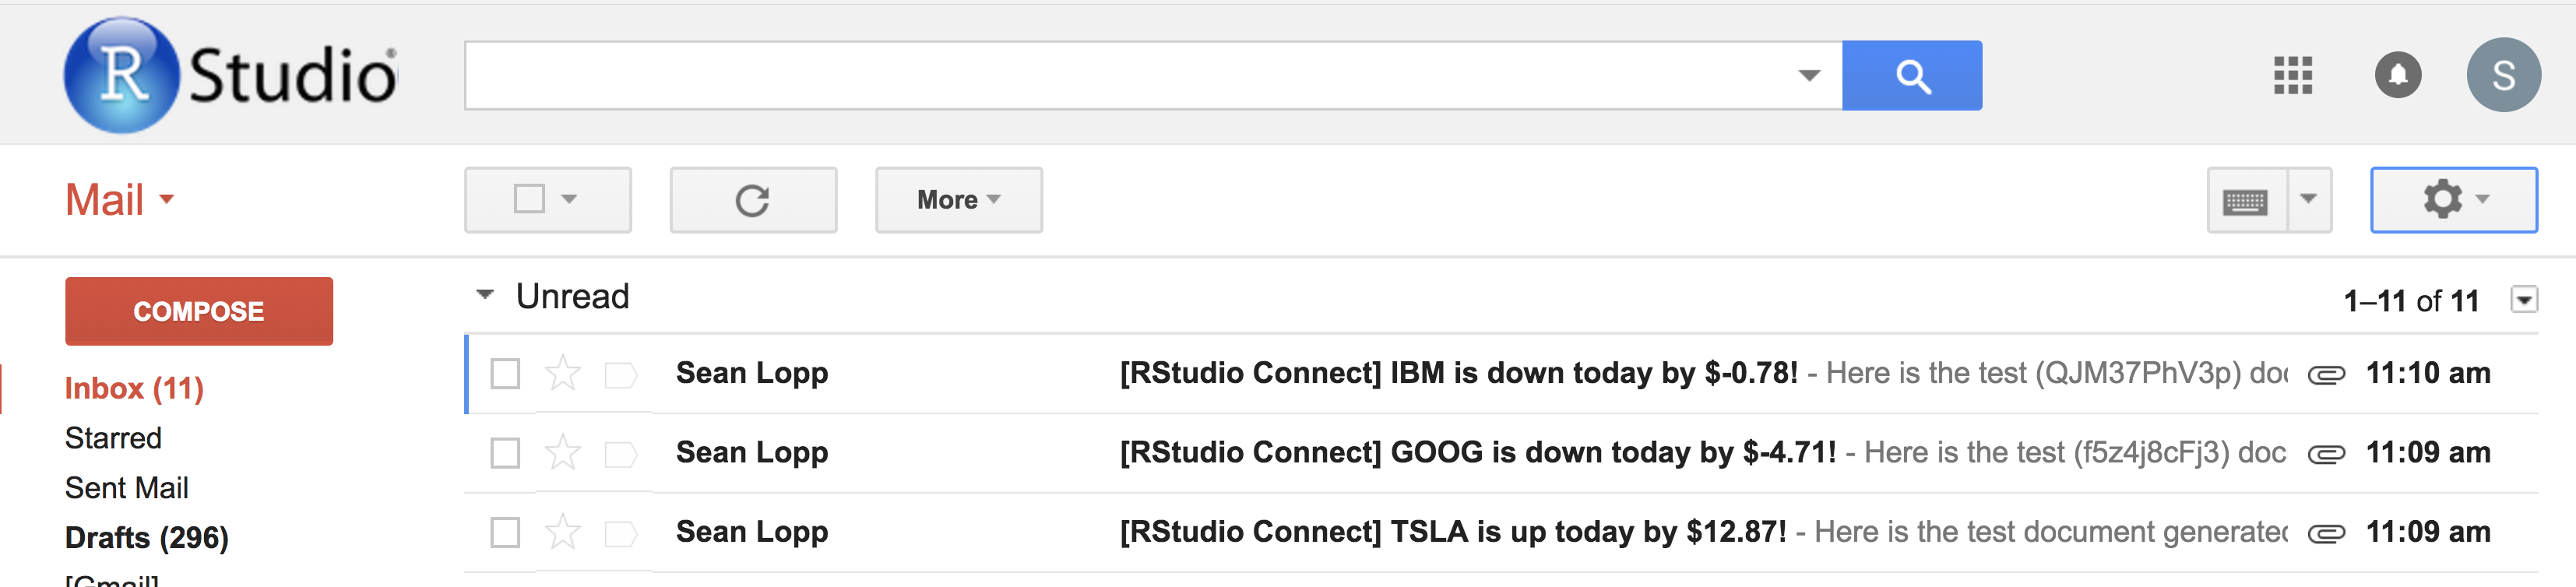 Inbox showing emails from Connect with custom subject lines